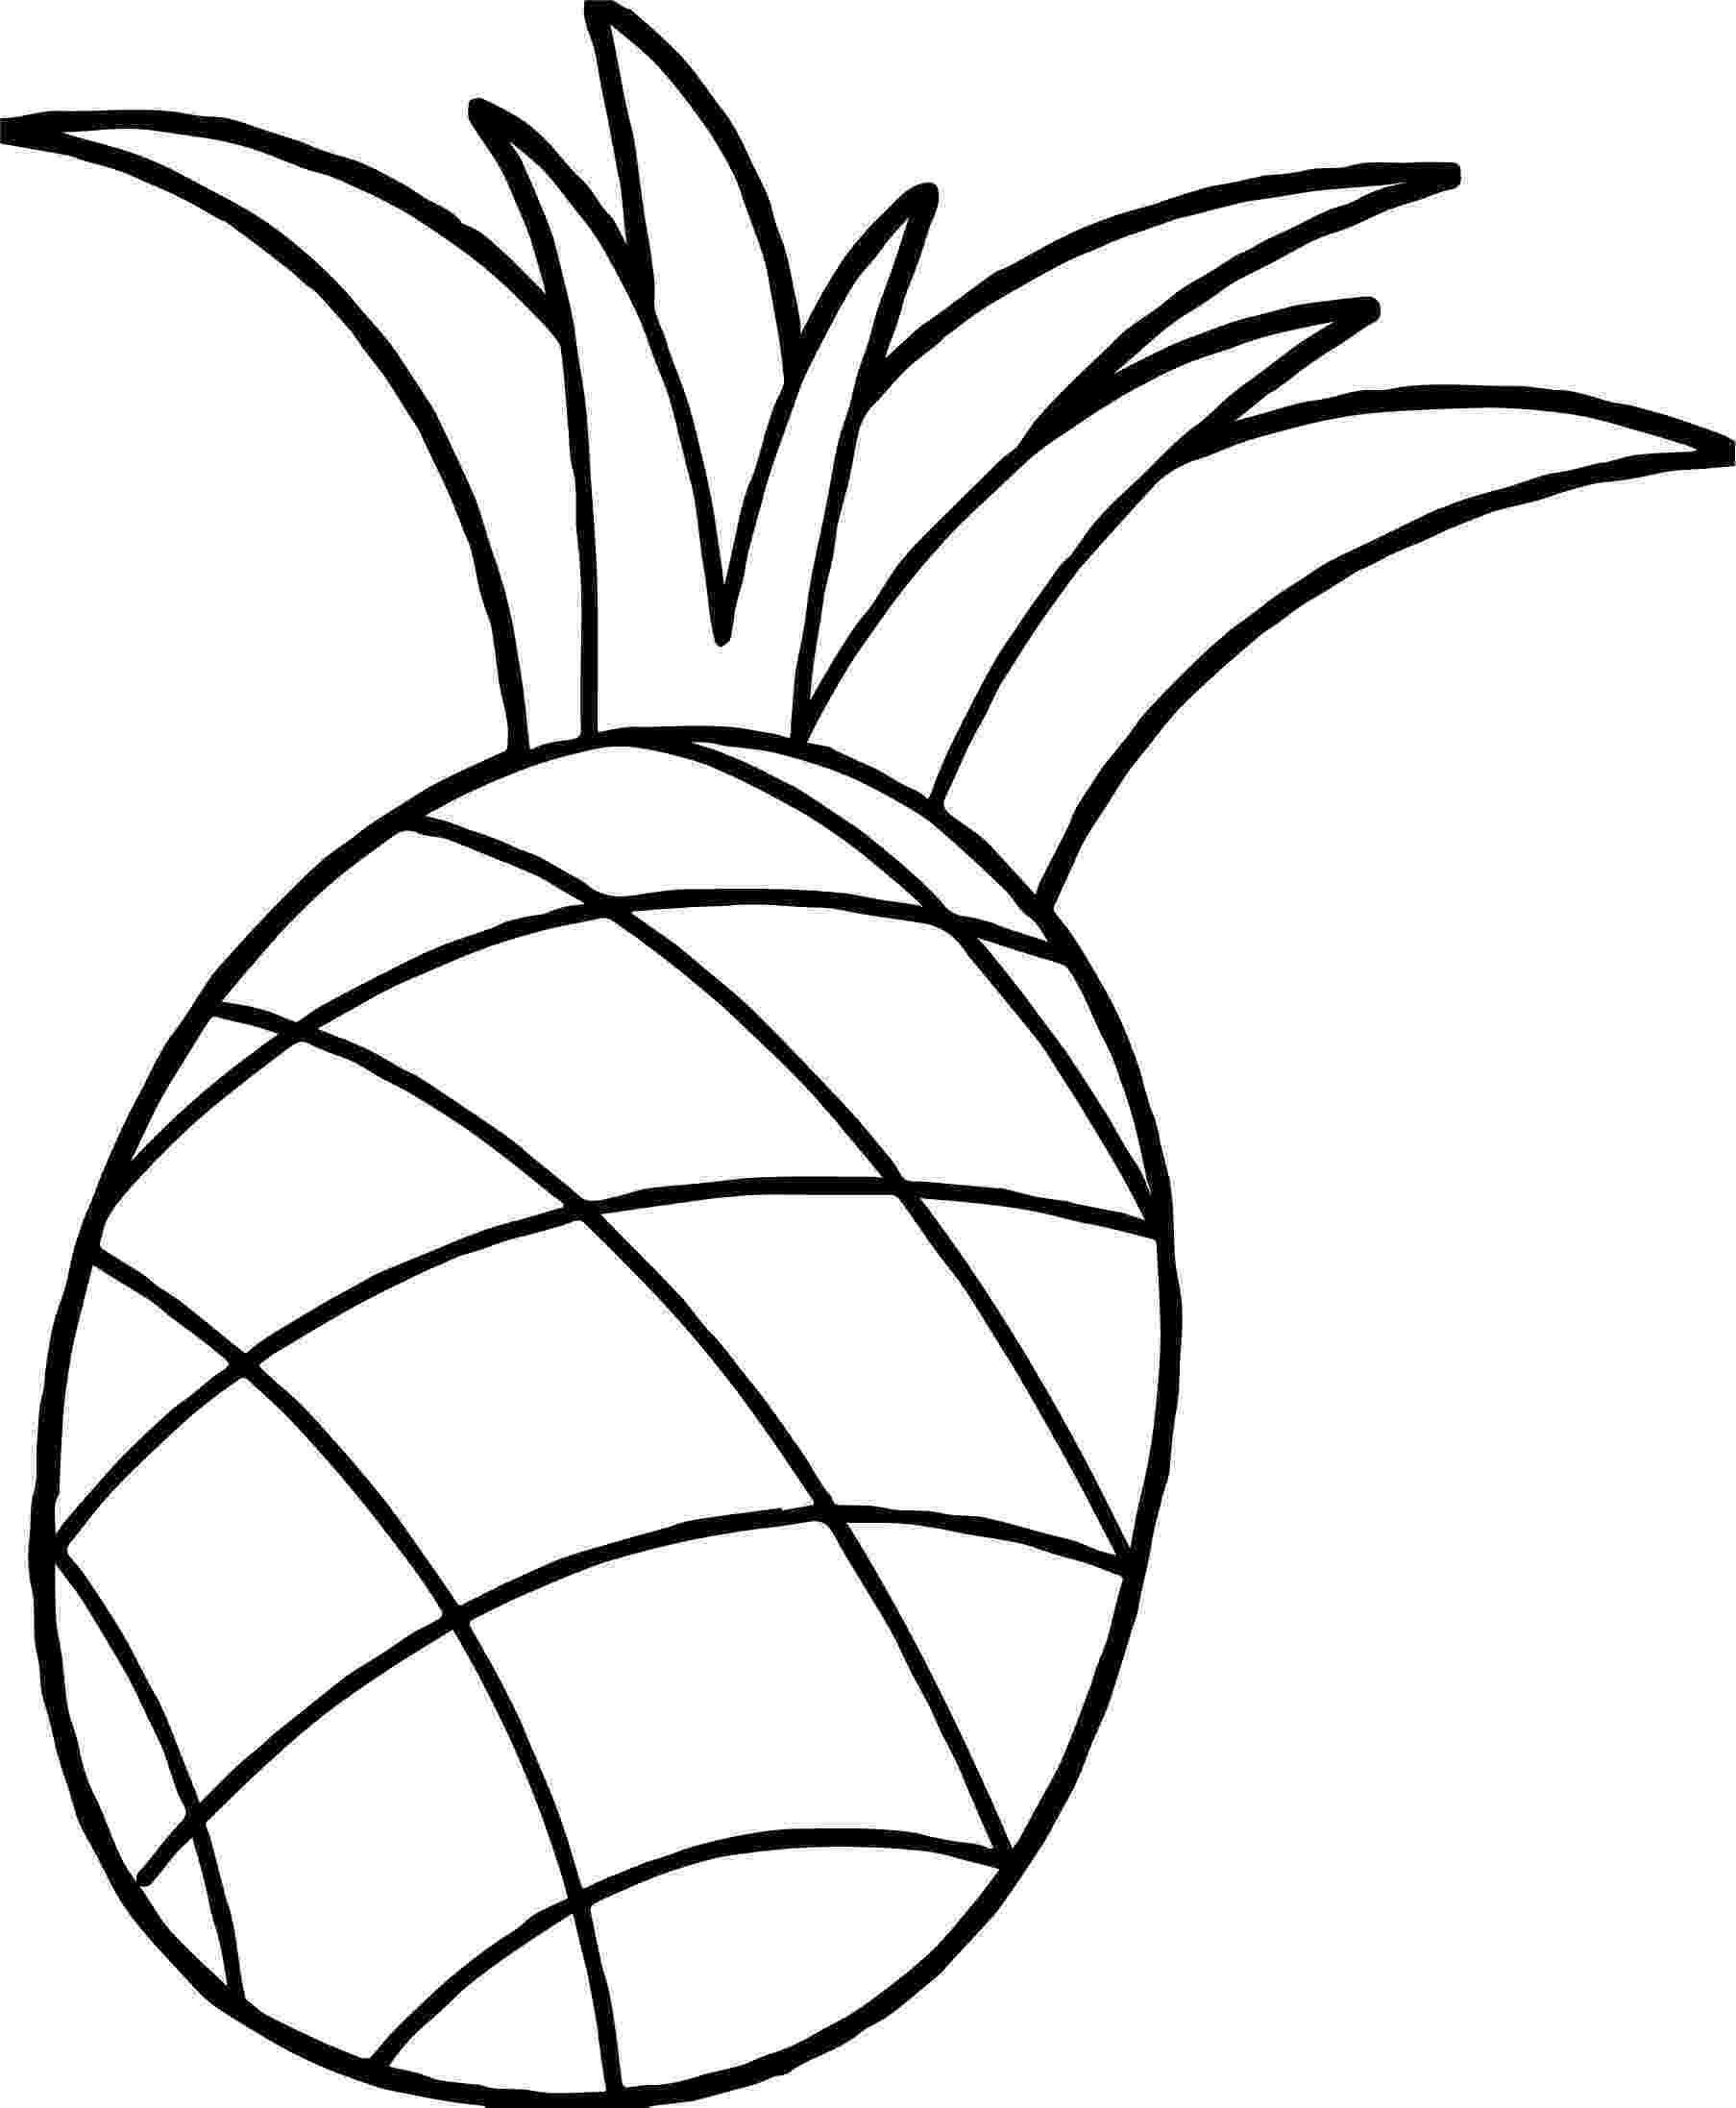 pineapple picture to color free printable pineapple coloring pages for kids pineapple picture to color